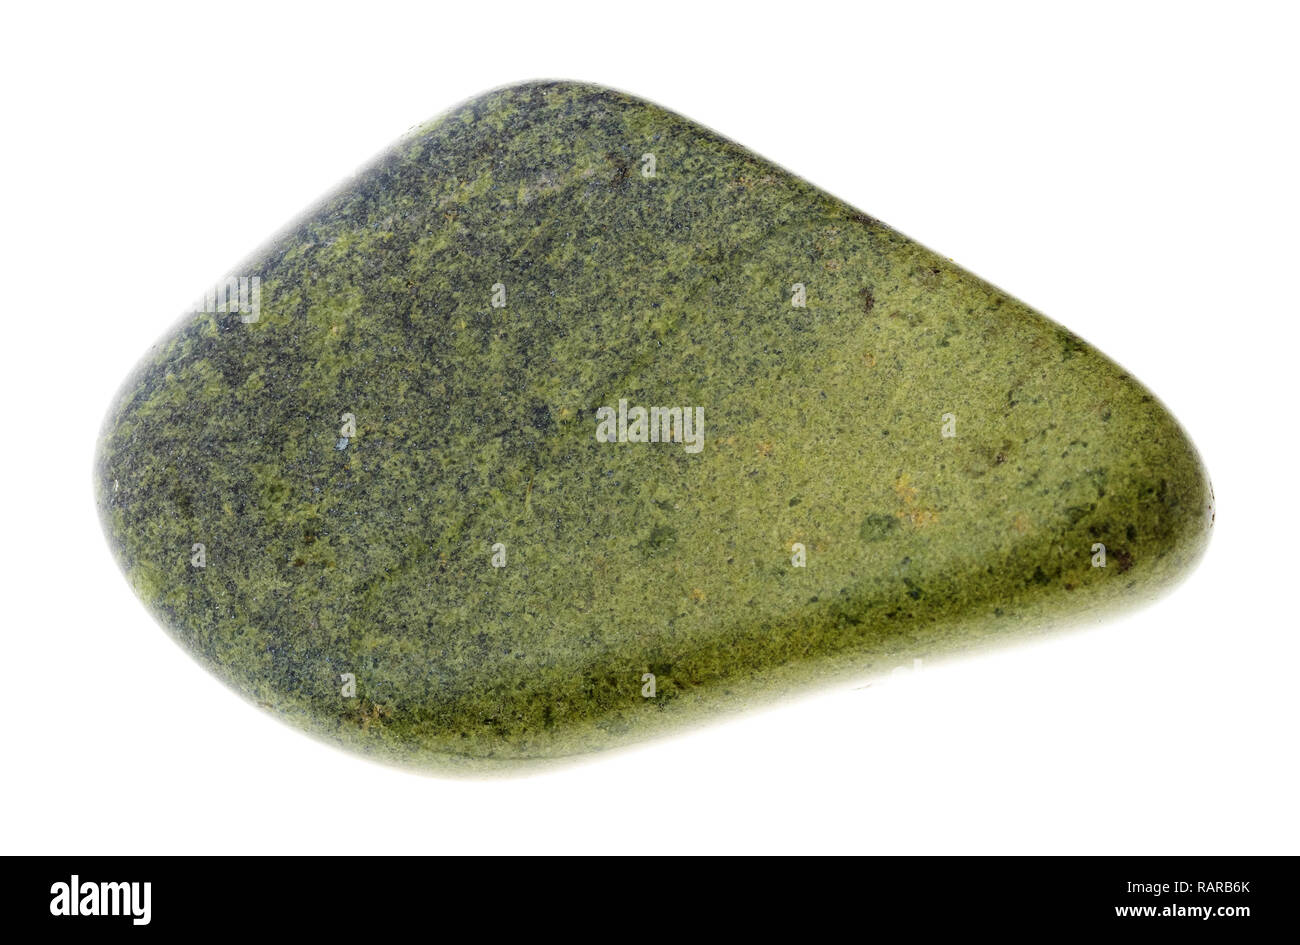 macro photography of natural mineral from geological collection - polished Epidote gemstone on white background - Stock Image